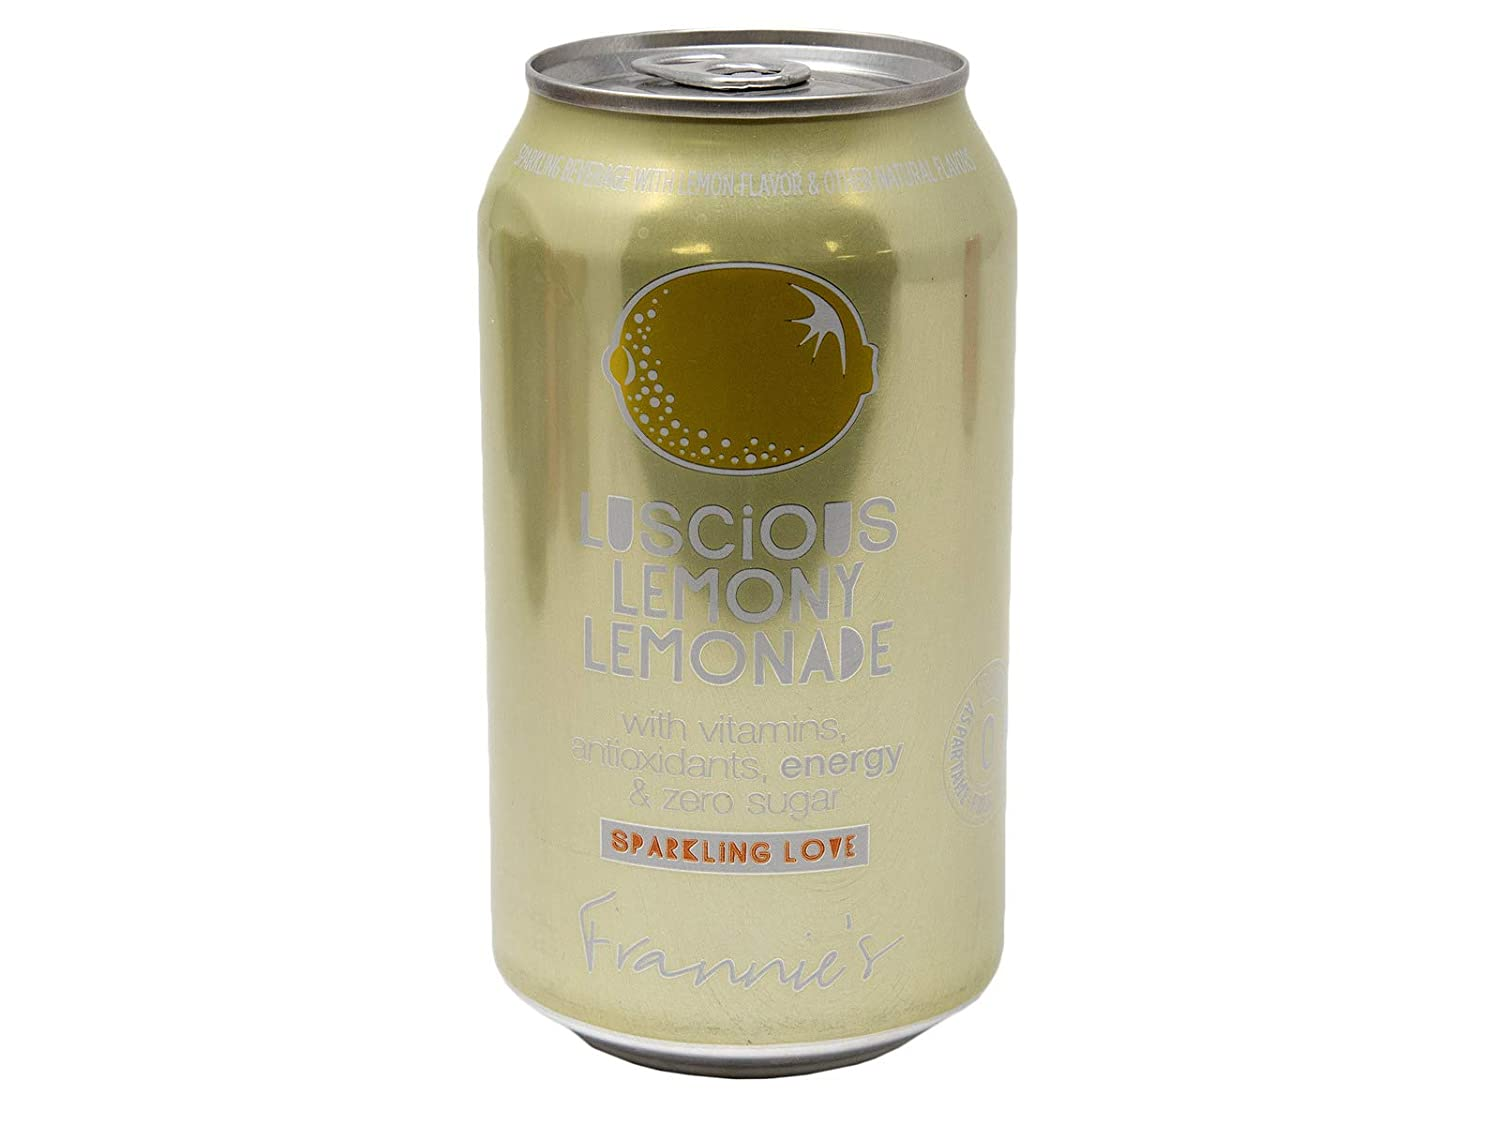 Frannie's Sparkling Luscious Lemony Lemonade, Protected With High-Density Foam, With Vitamins, Antioxidants, Energy, and Zero Sugar, 12 Oz. Cans (Pack of 16 Cans)